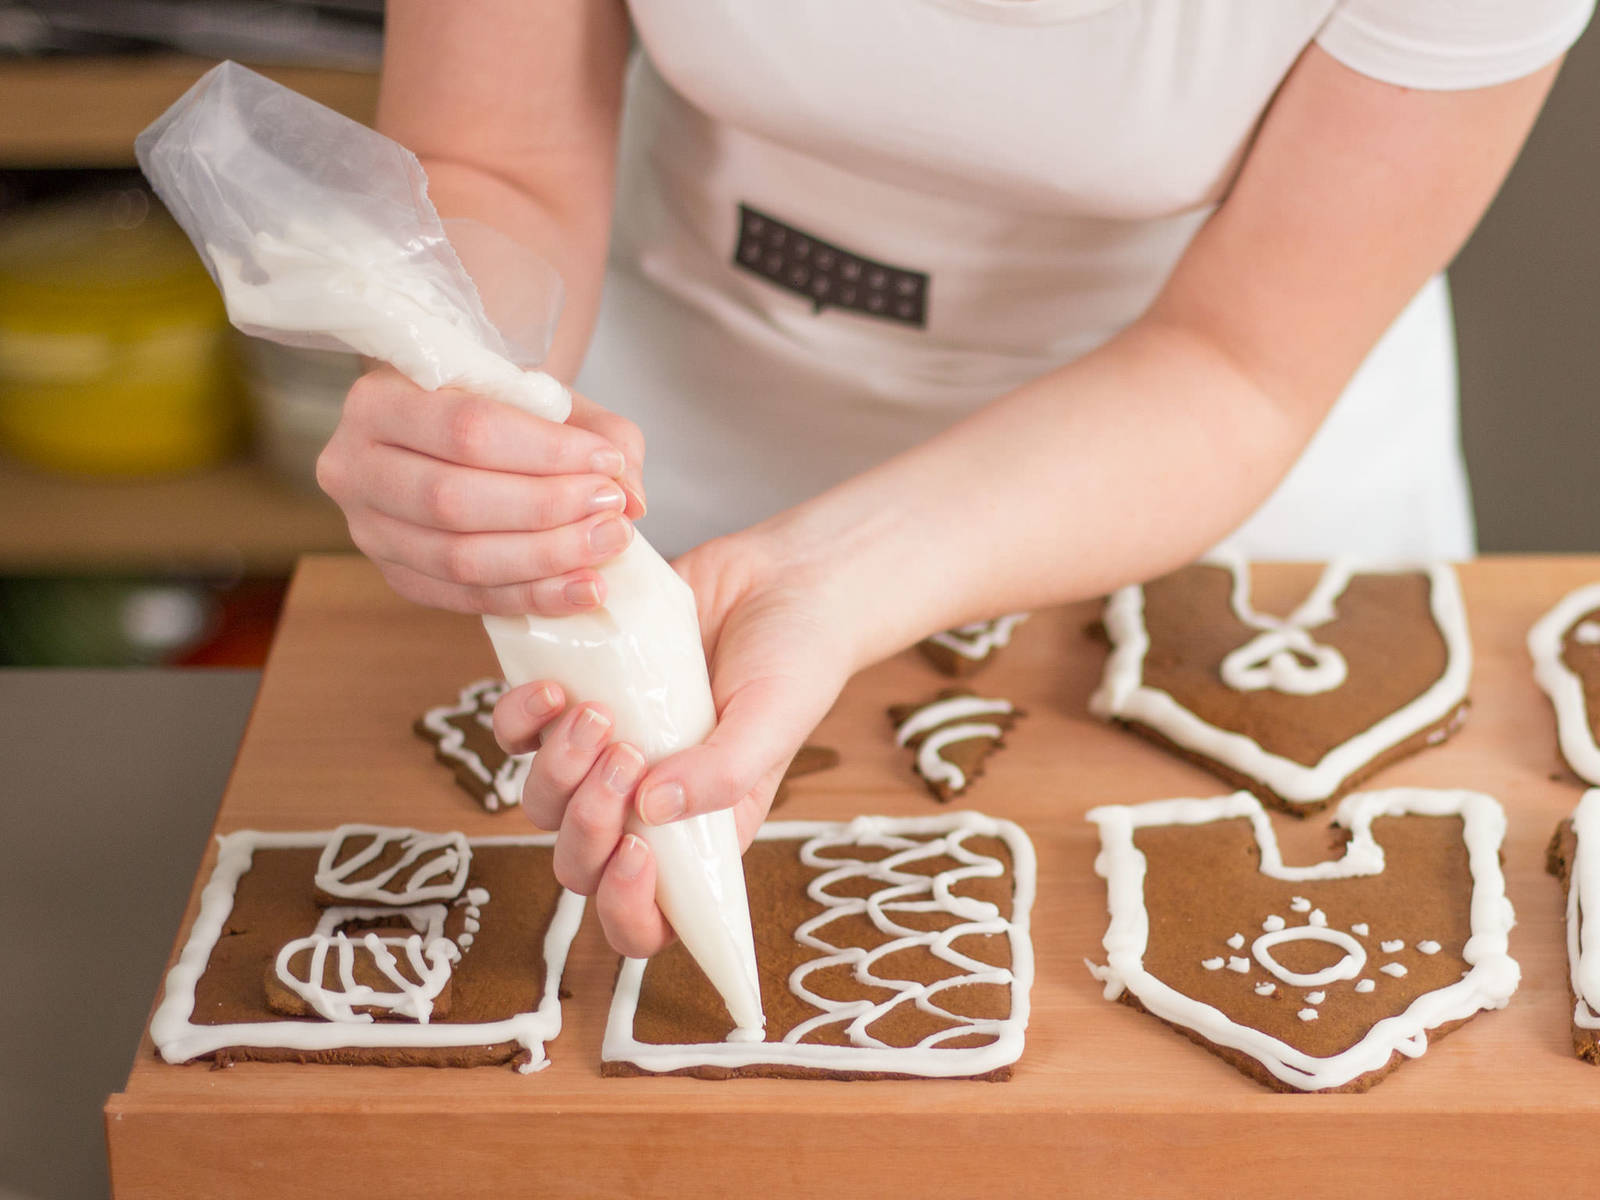 Meanwhile, mix confectioner's sugar with just enough water to form a thick icing. Once pieces have cooled, decorate with icing using a piping bag. If desired, decorate with sprinkles or other edible decorations. Set aside to dry completely.